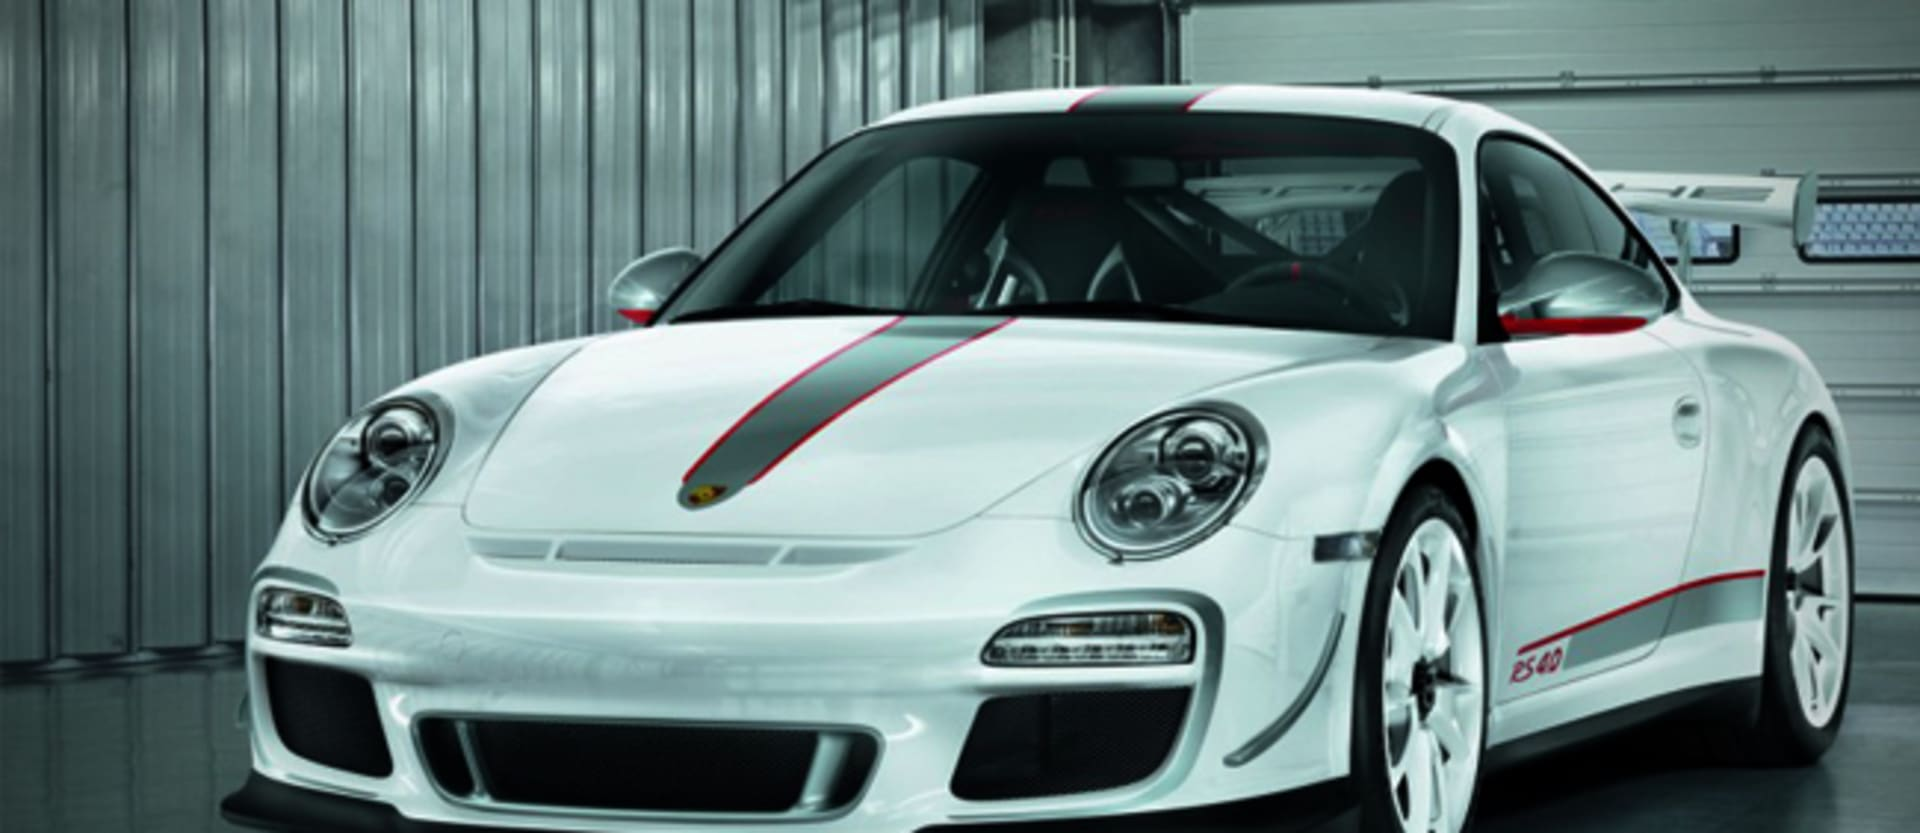 4.0-litre 911 is coming…